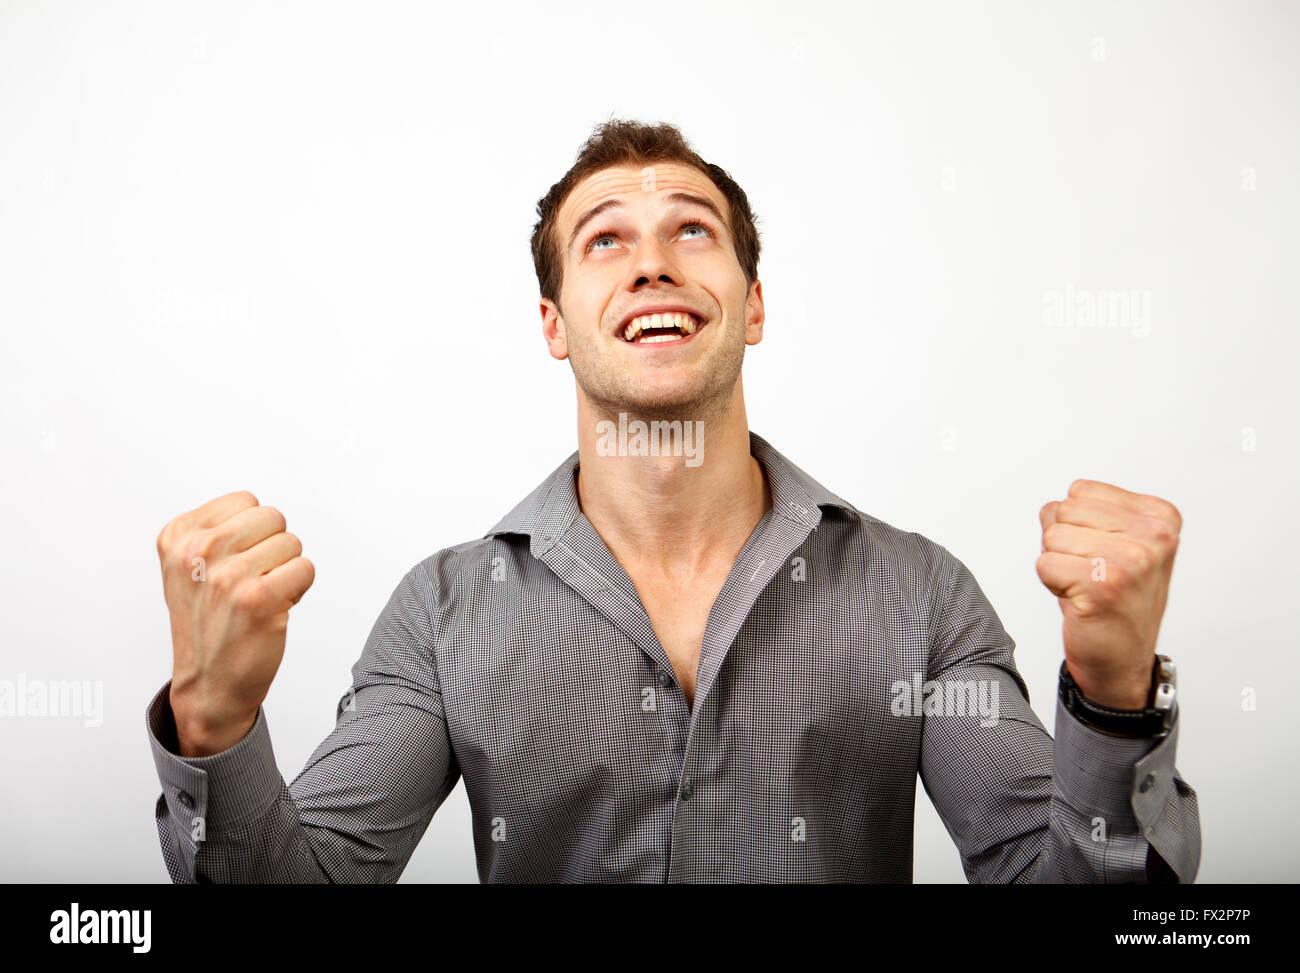 Excited male winner  expressing victory and success. Successful business man isolated on grey - Stock Image